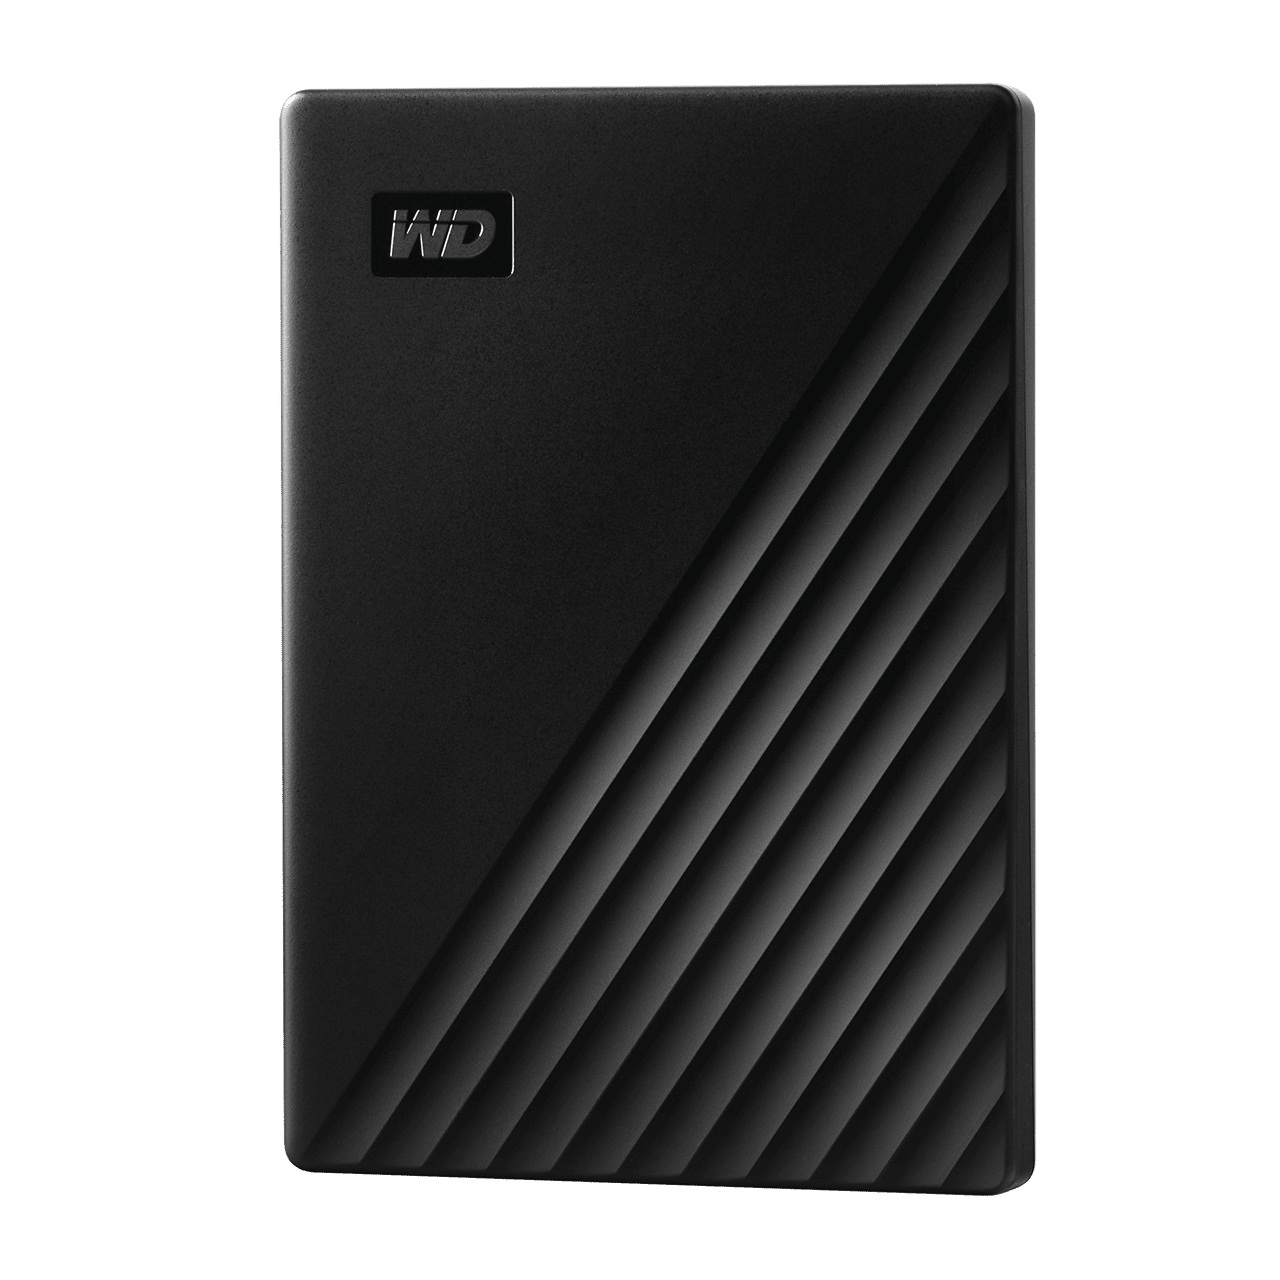 Western-Digital-WD-2TB-My-Passport-2020-3-2-Portable-Hard-Drive-HDD-All-Color-DI thumbnail 3